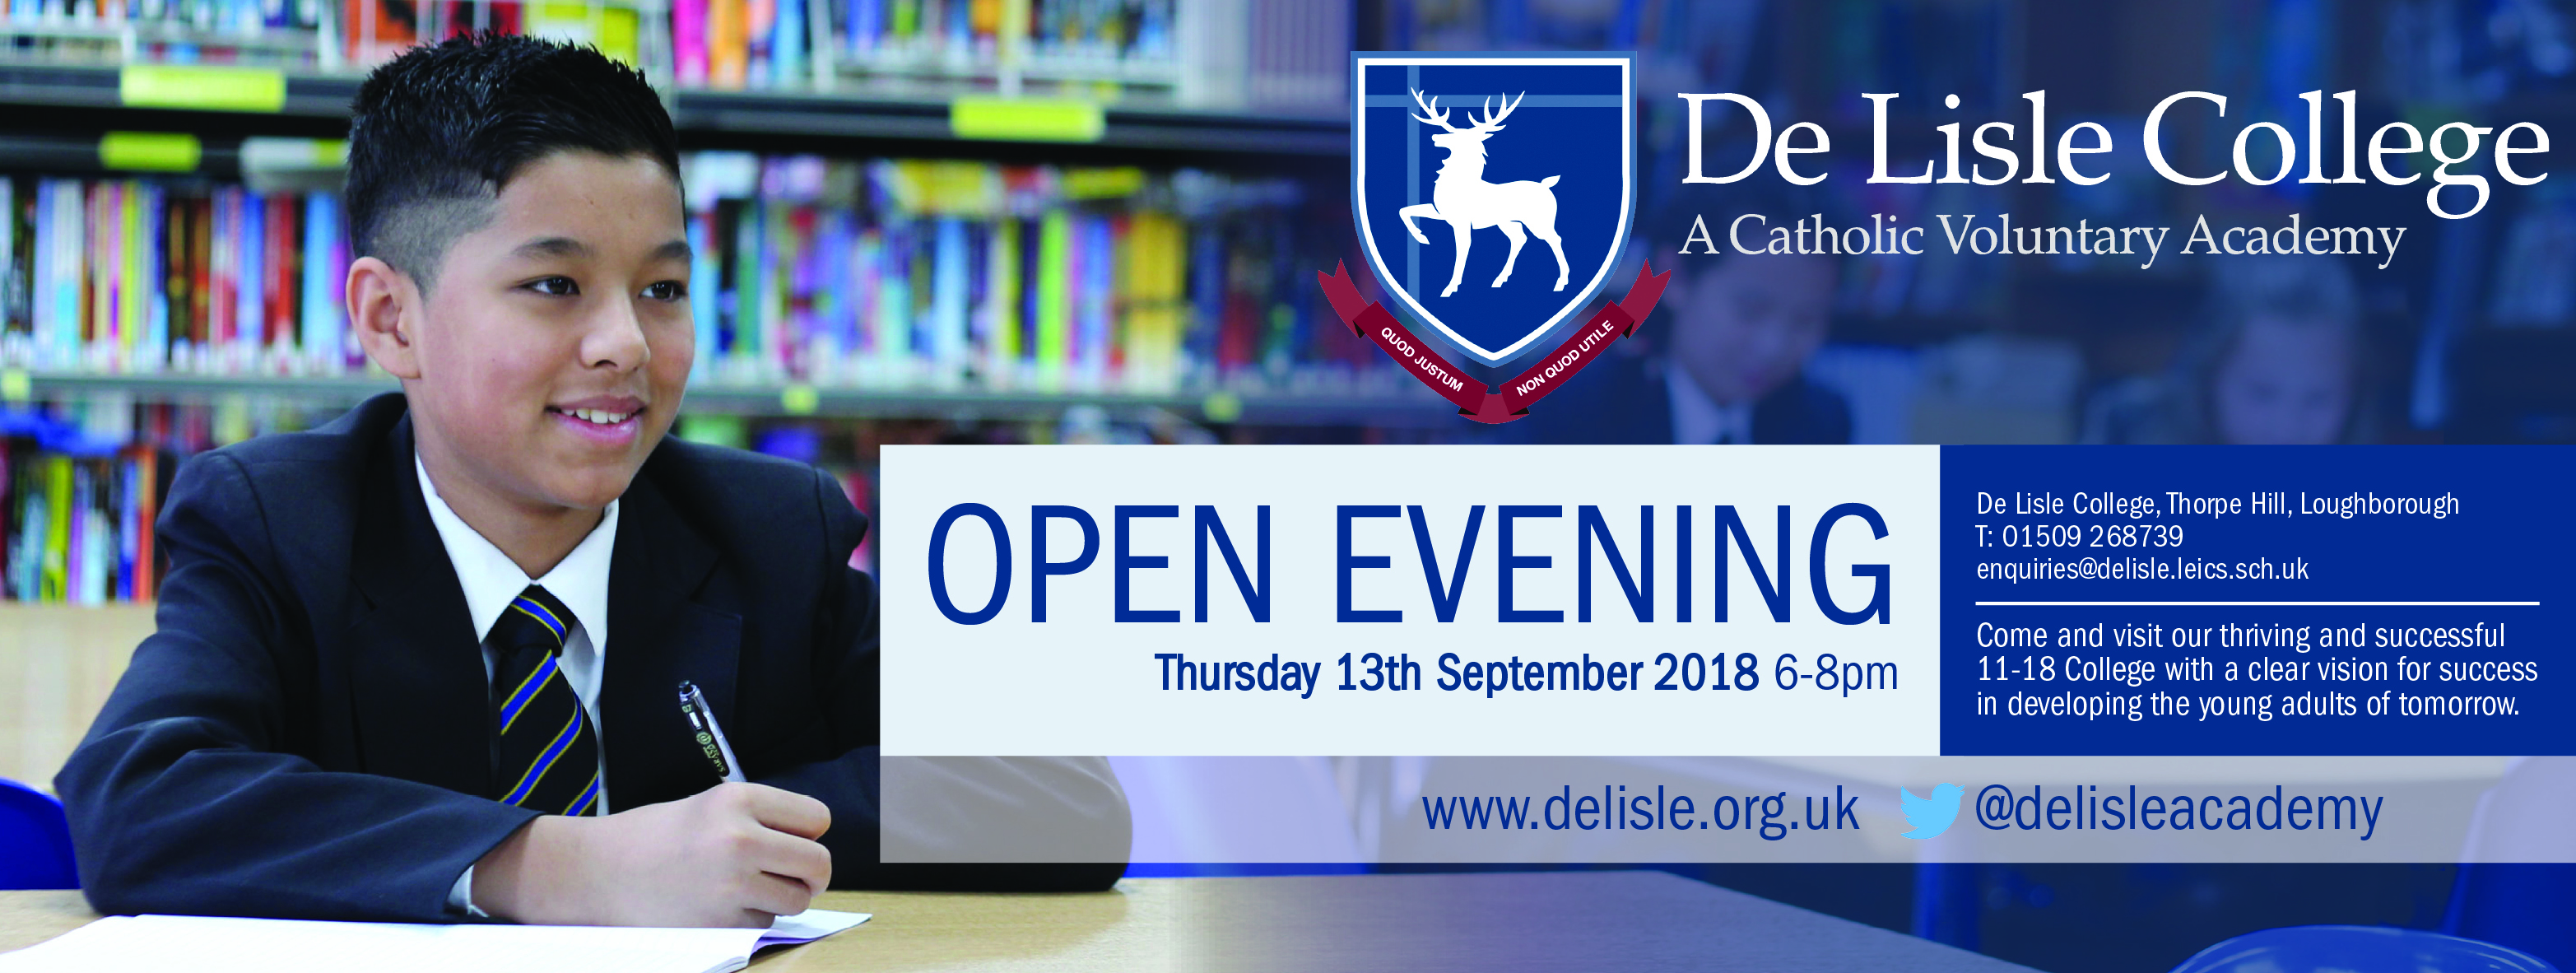 De Lisle College Open Eve Advert 2018